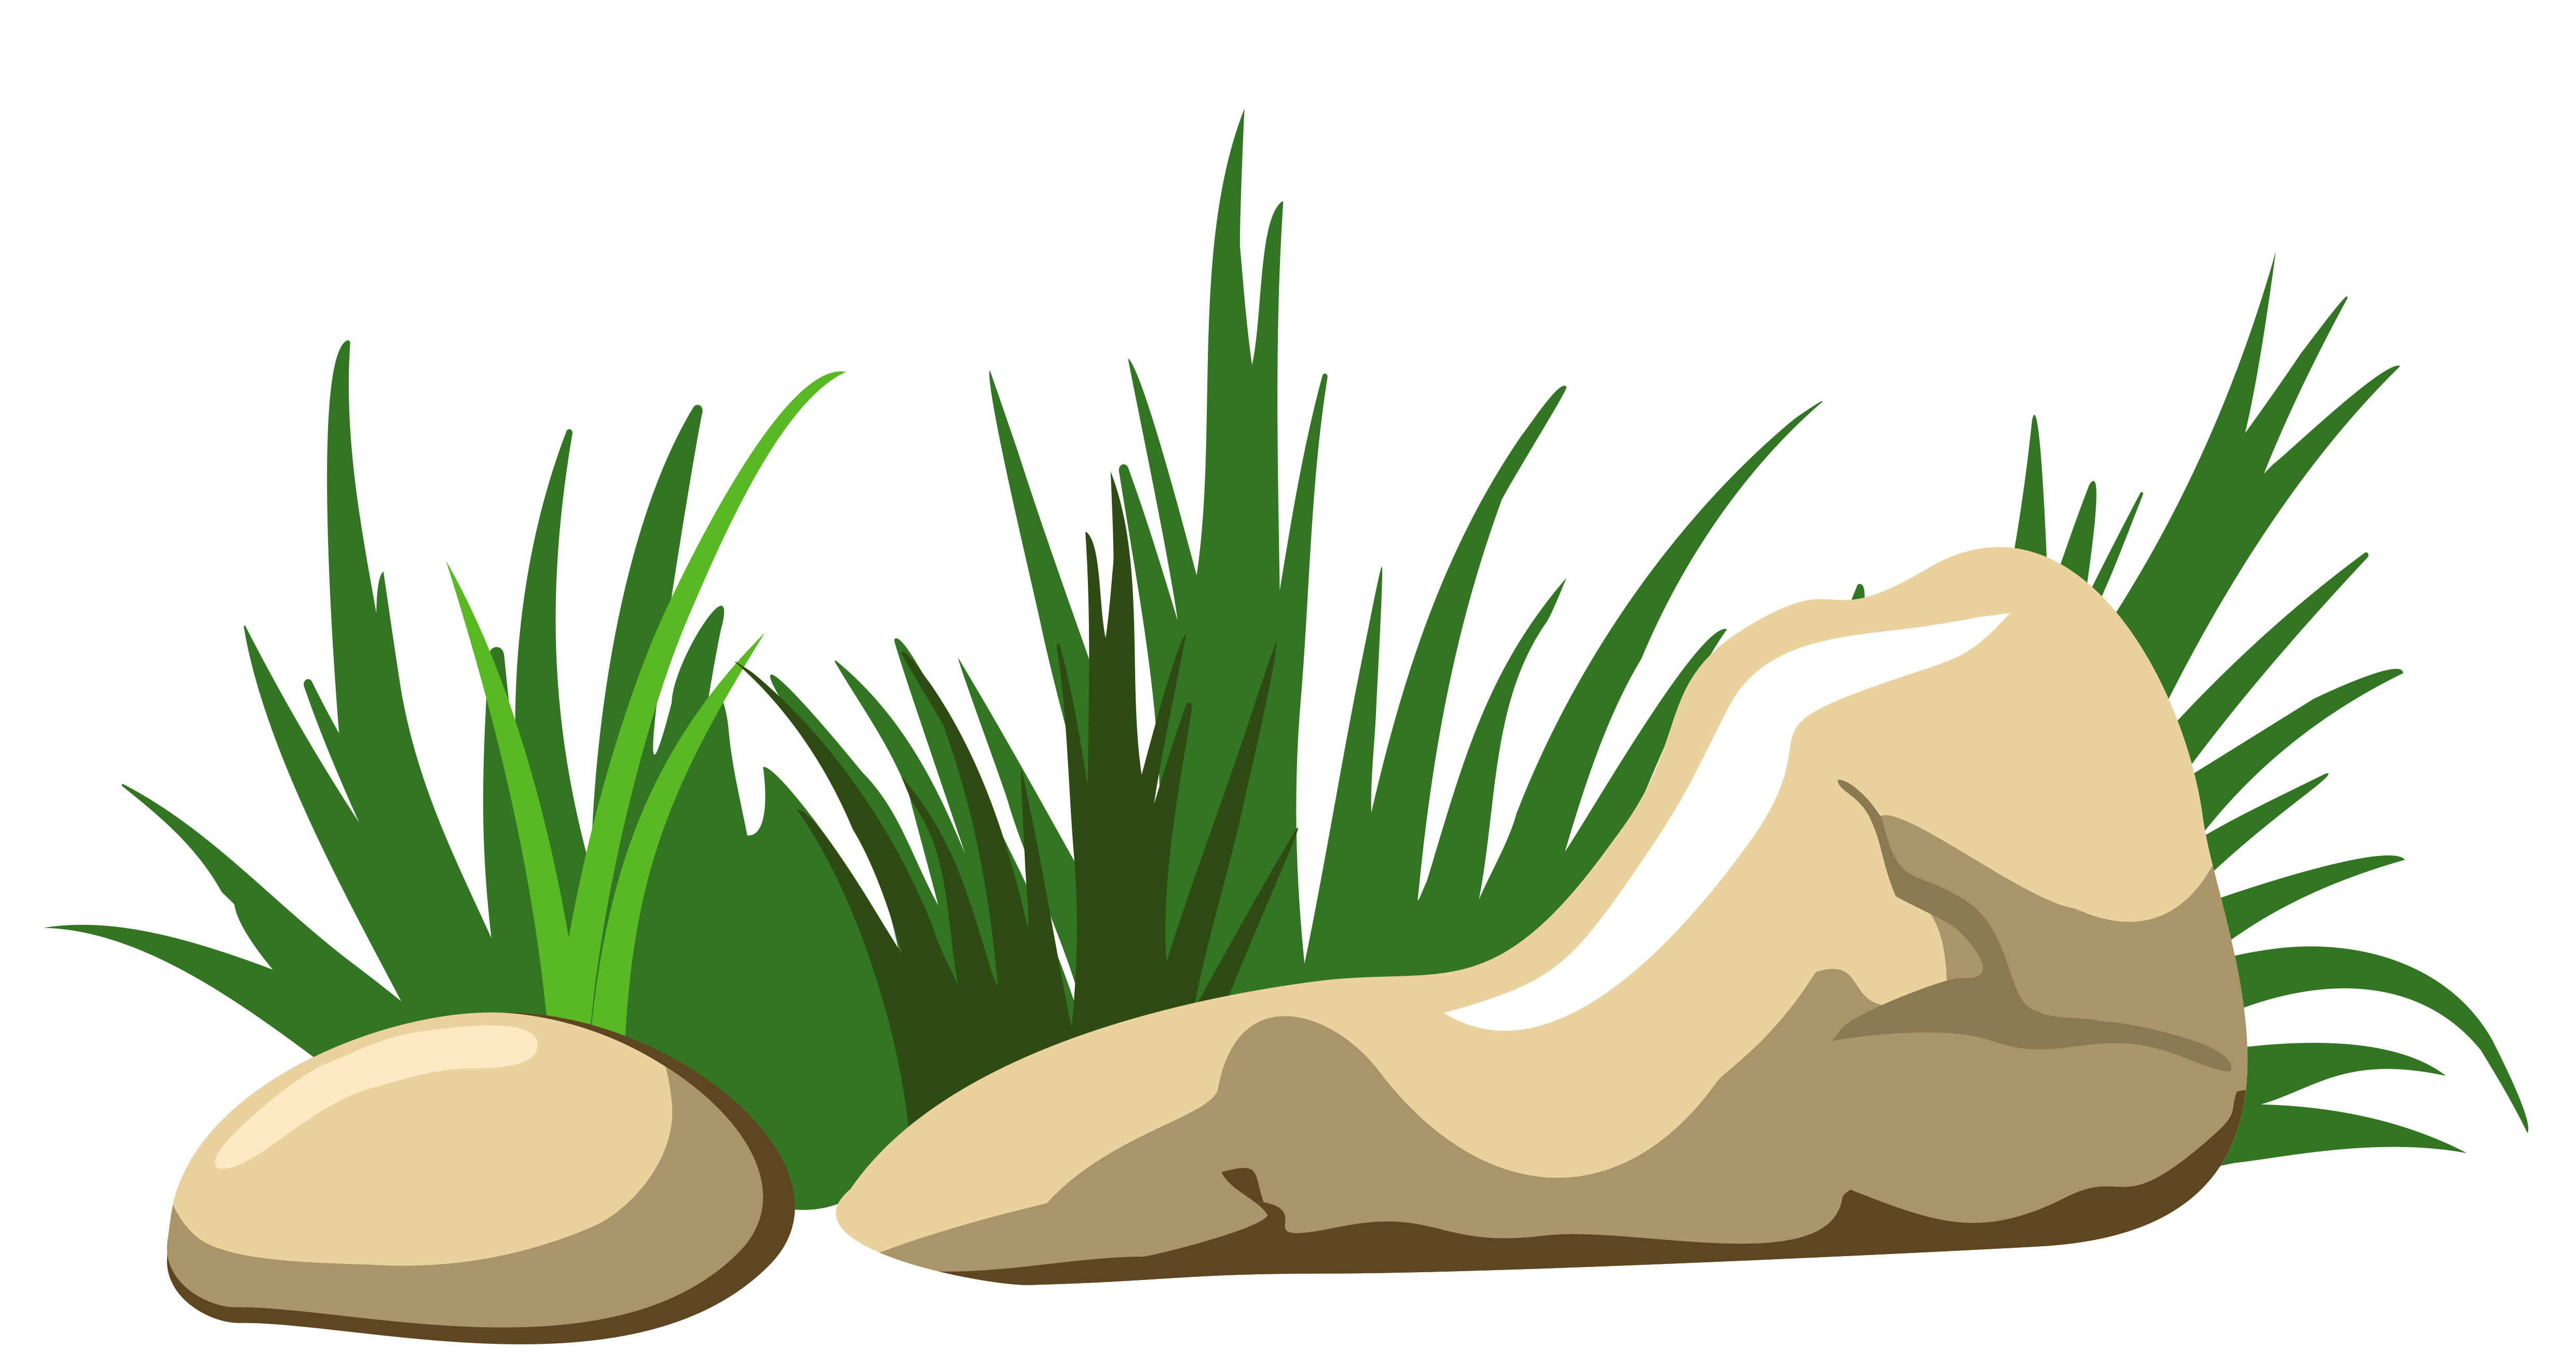 Cross on rock clipart jpg library download Rock Clip art - Grass and Stones Transparent PNG Clipart 4963*2624 ... jpg library download